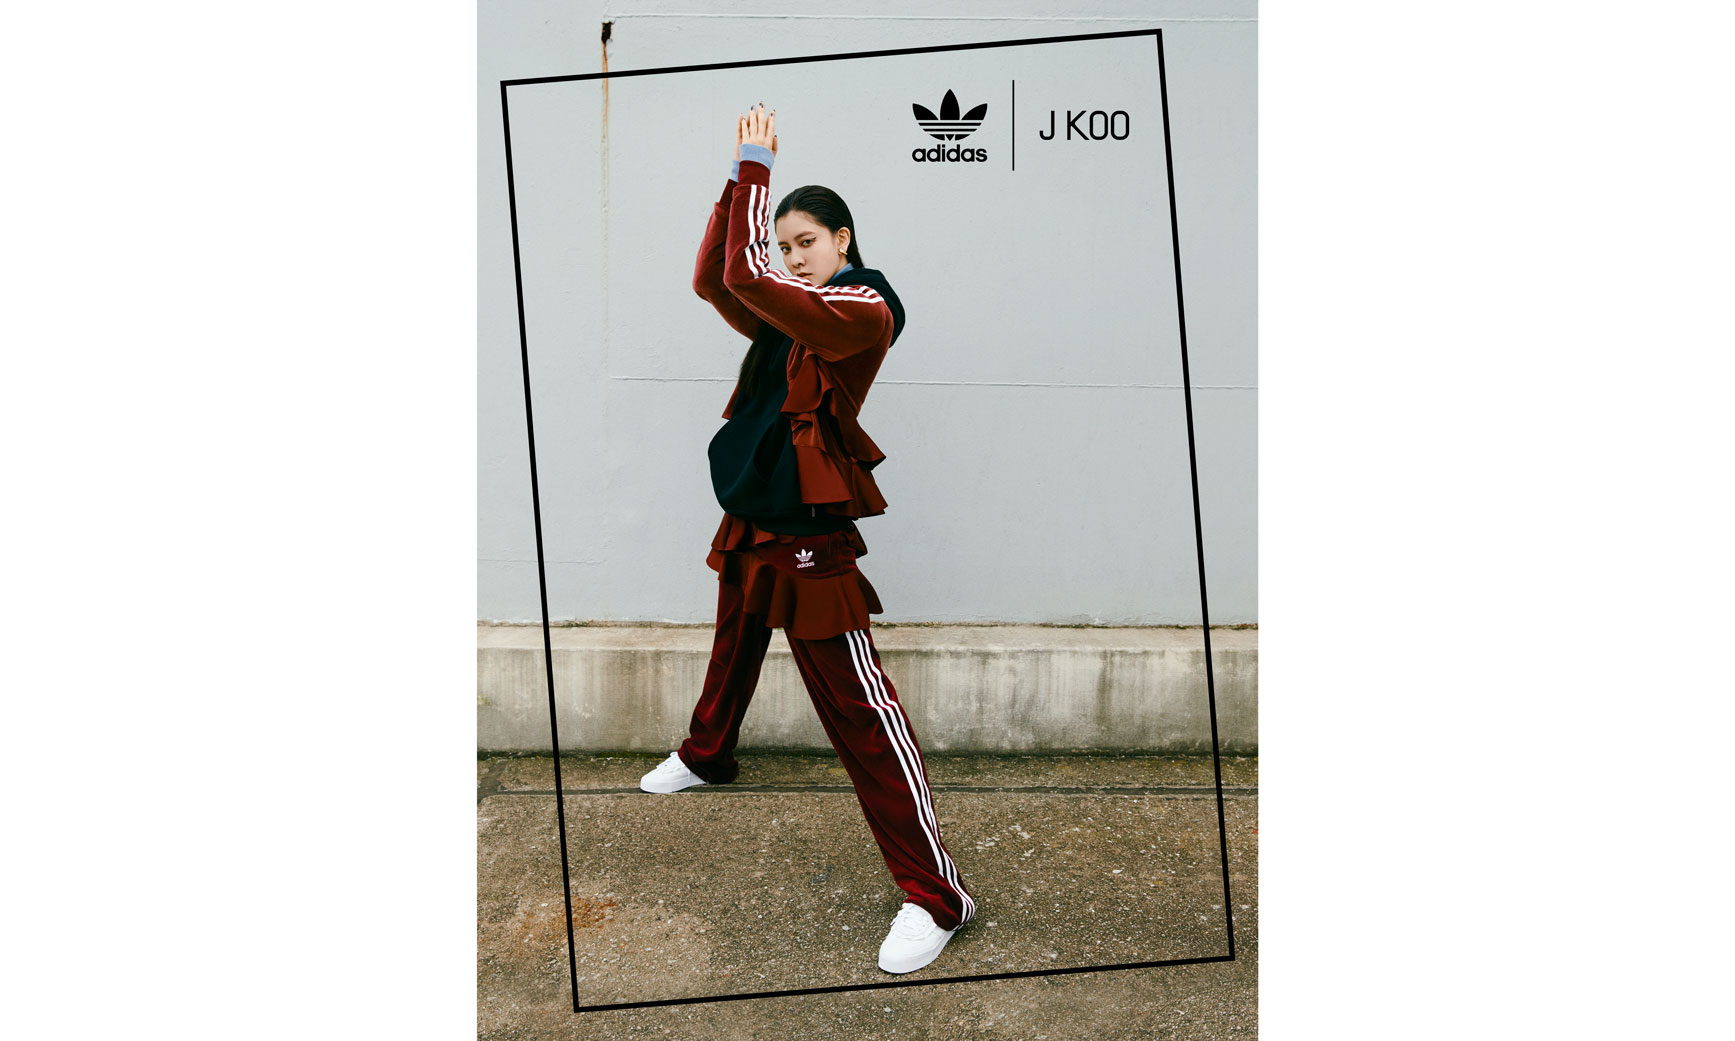 adidas Originals by J KOO 联名系列正式公布